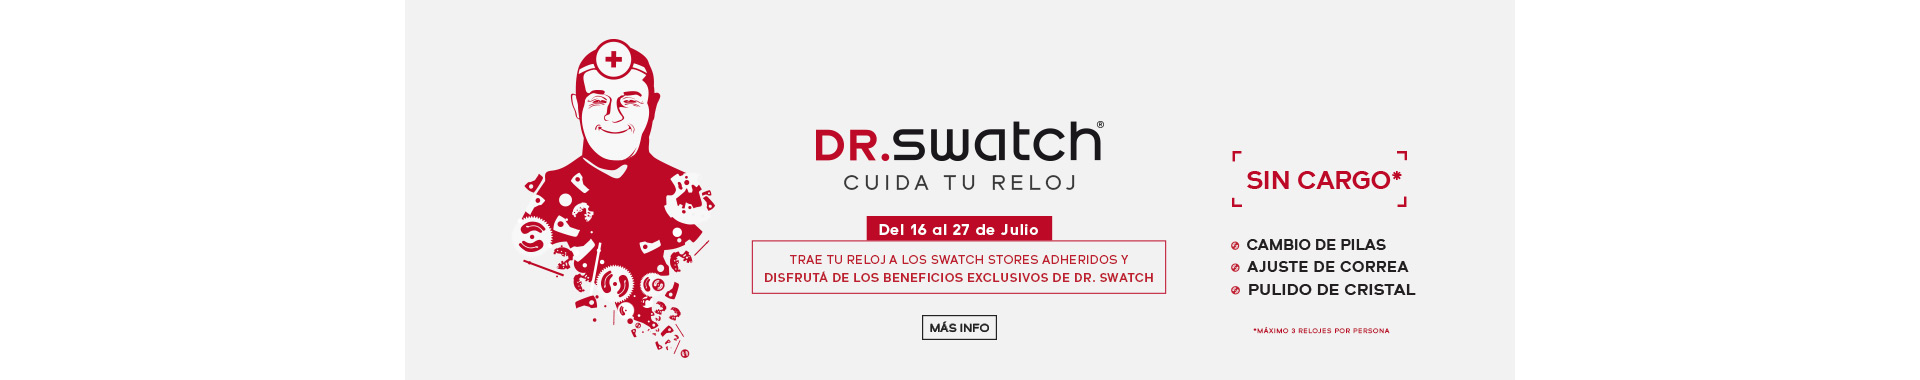 banner Dr. Swatch